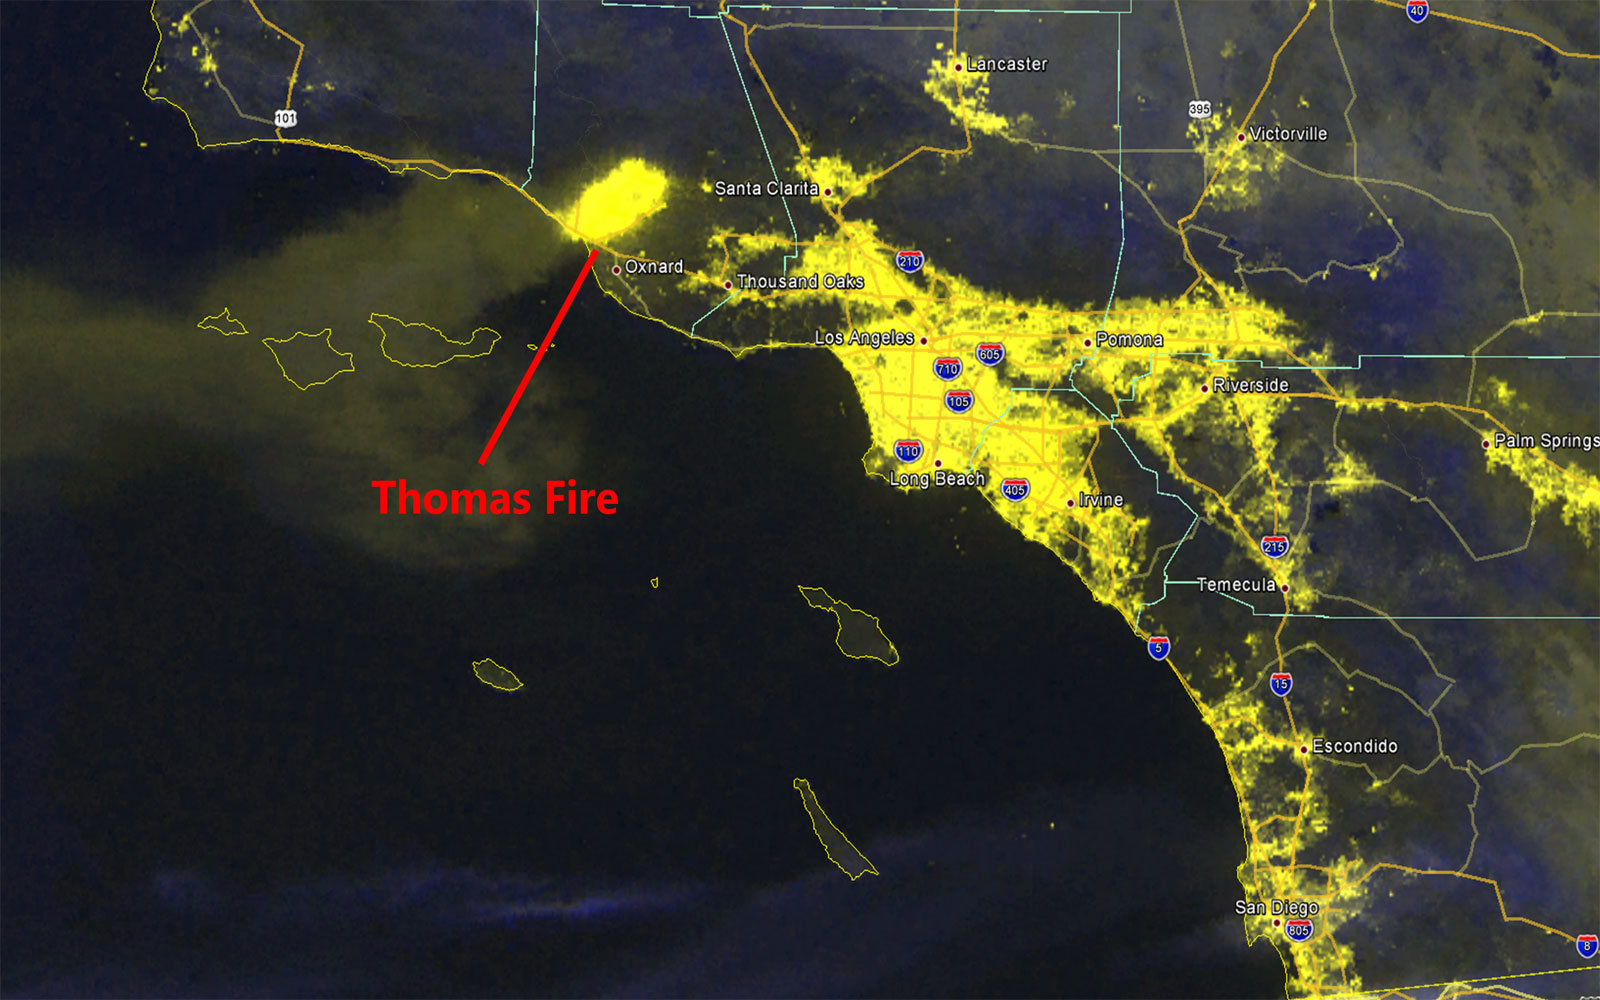 This California Wildfire Map Shows Where Fires Rapidly Spread